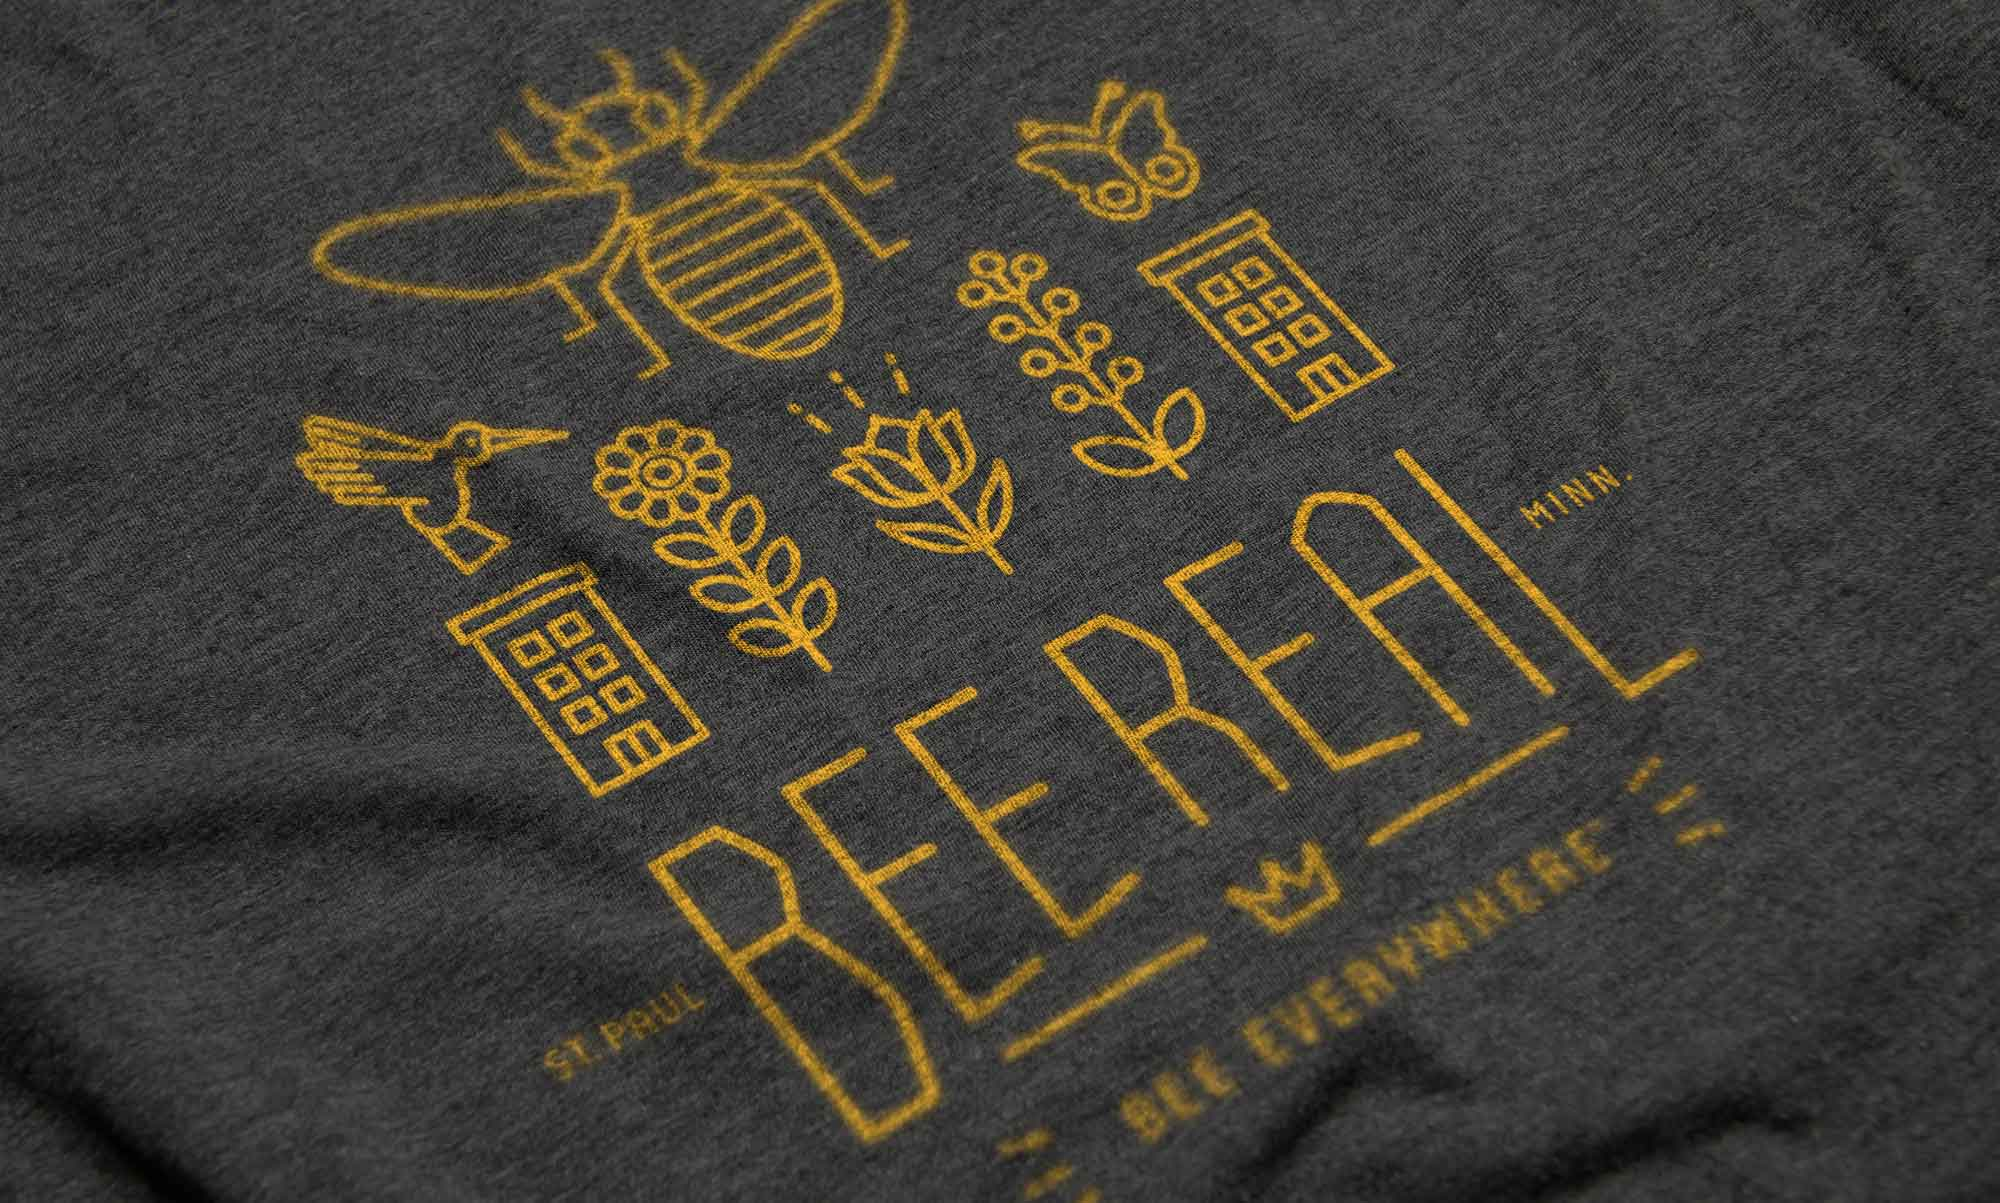 Bee Real Everywhere - T-shirt Detail